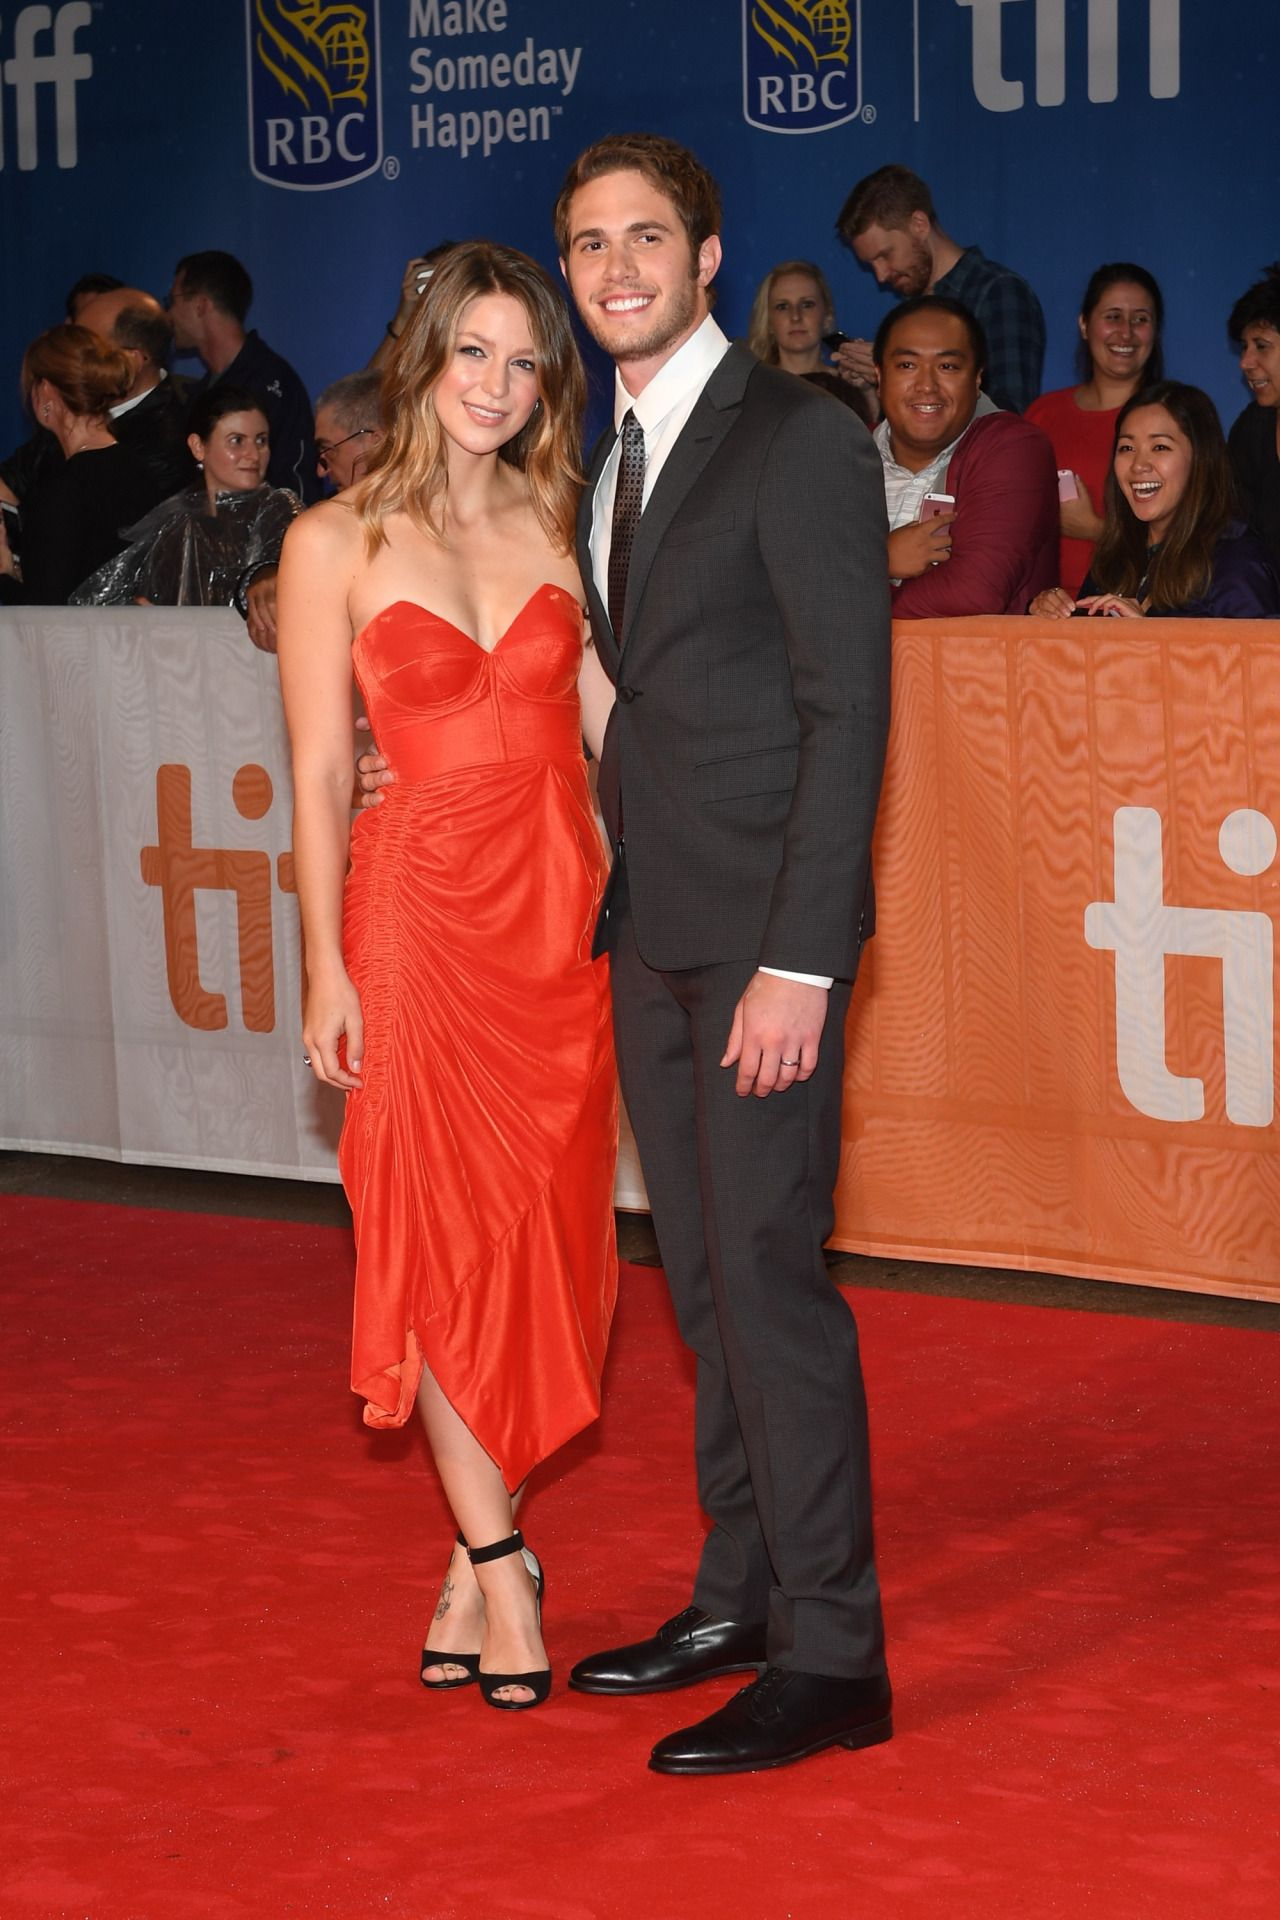 Melissa Benoist And Blake Jenner Attend The Edge Of Seventeen Premiere During